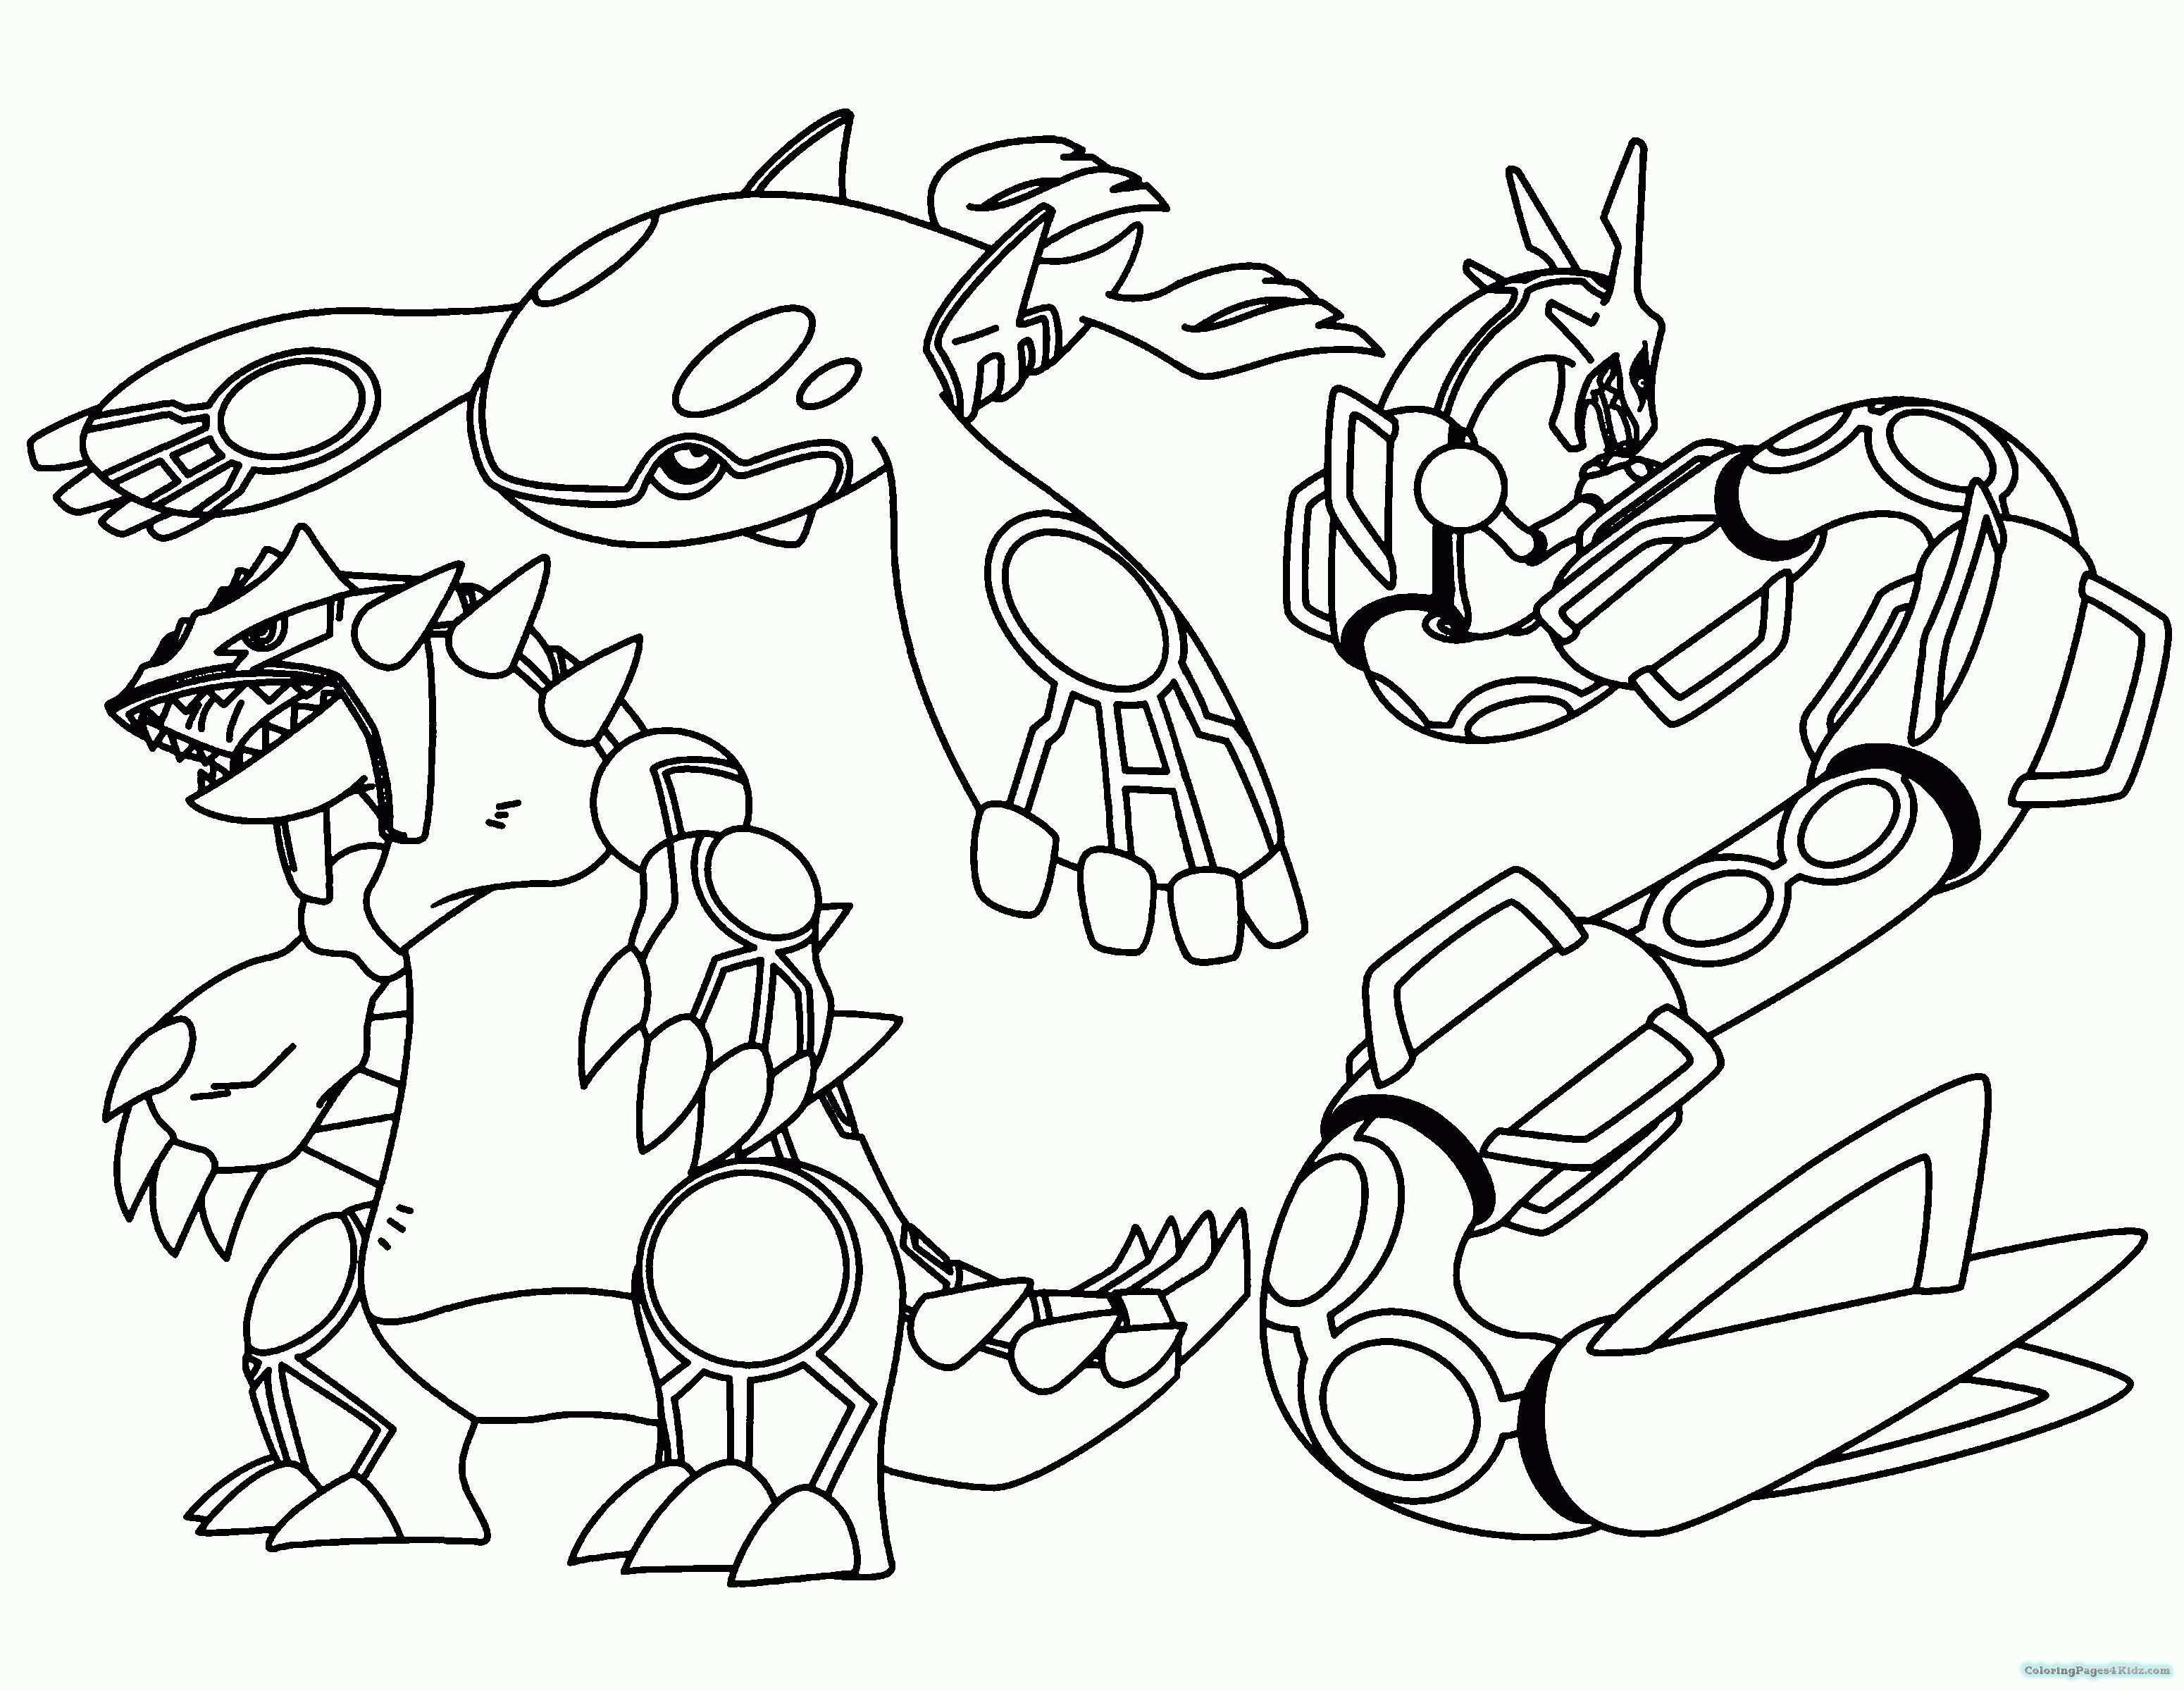 Pokemon Coloring Pages Mega Blaziken Printable Charmander Download Free Best Quality Pokemon Coloring Pages Cartoon Coloring Pages Mandala Coloring Pages